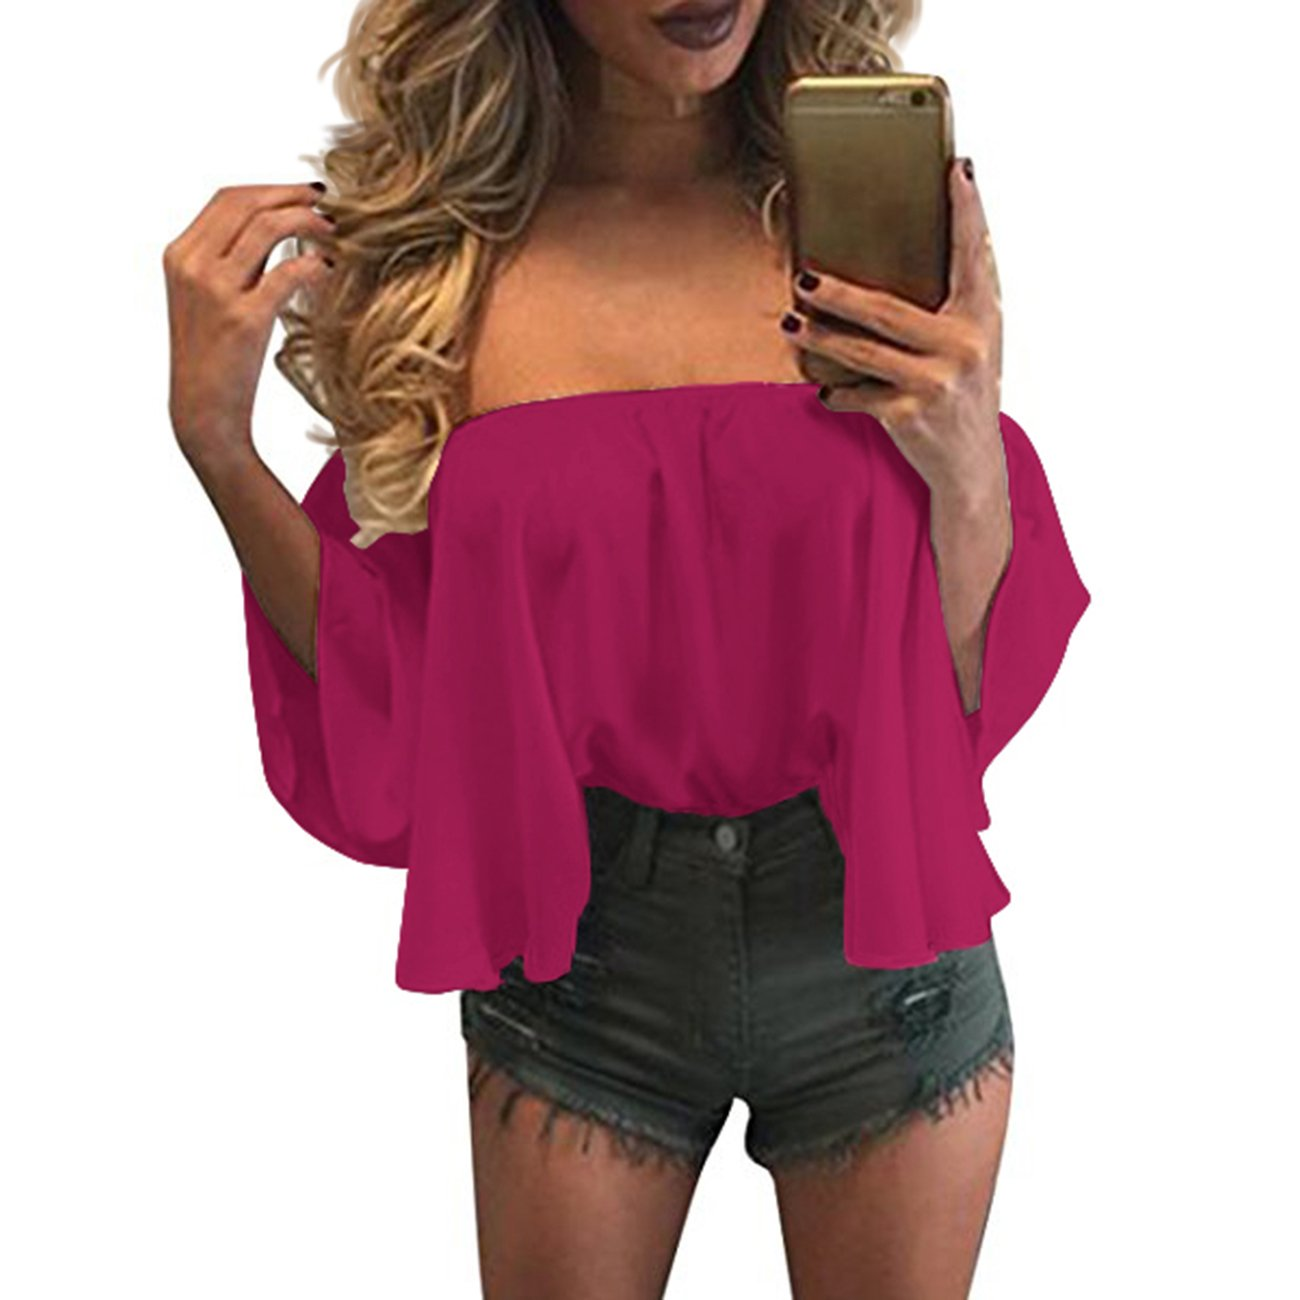 ec6e9c4259a1ef zdzdy Women Short Sleeve Off Shoulder Blouse Casual Pleated Ruffle Blouse  Top Shirt at Amazon Women's Clothing store: